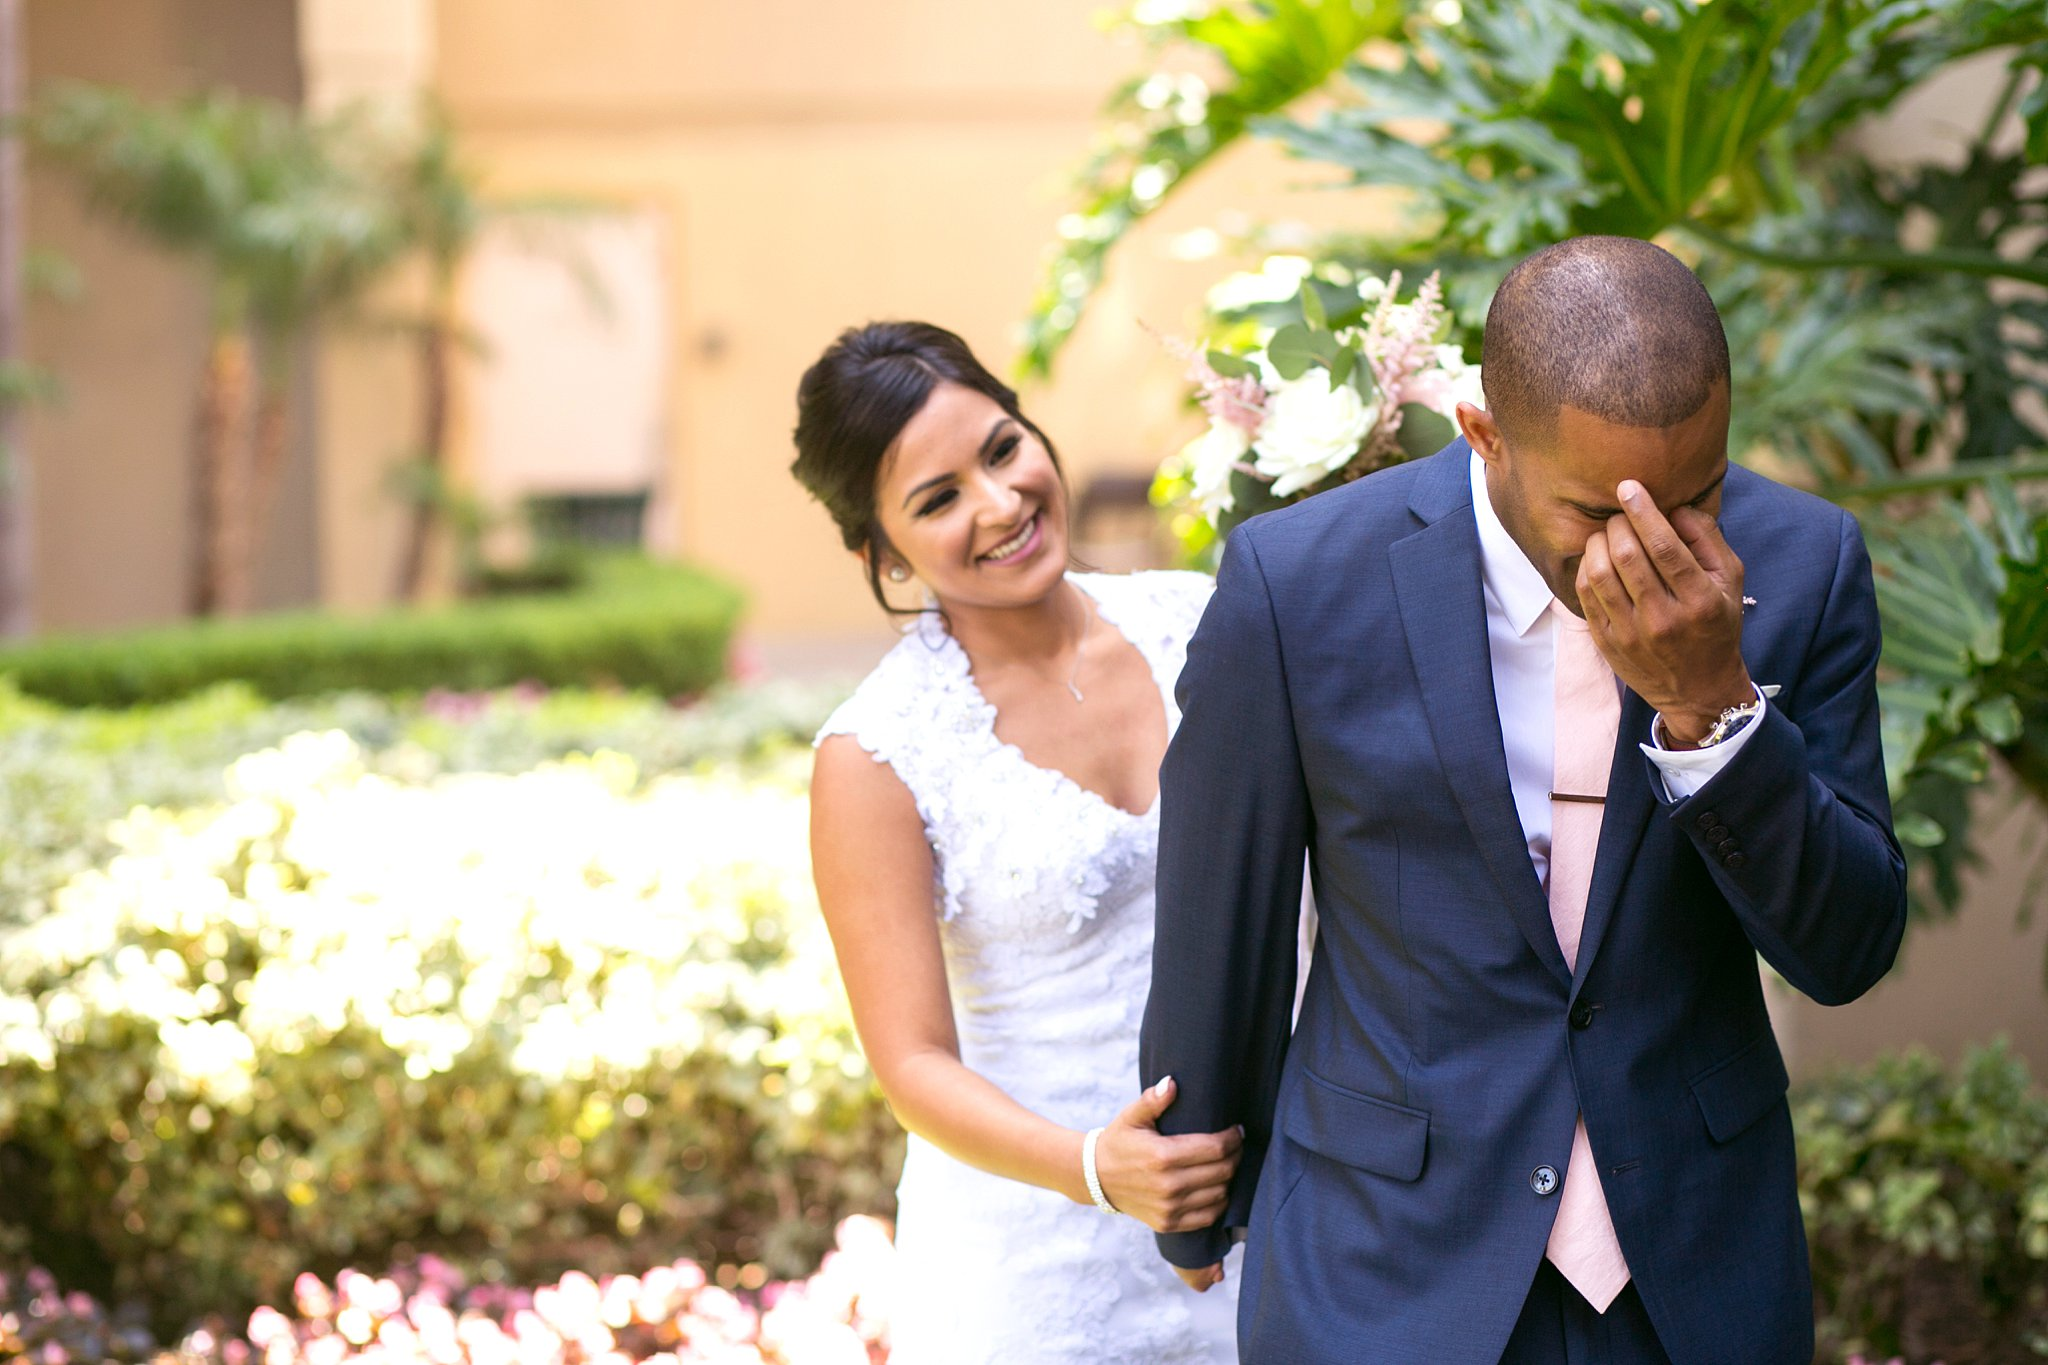 Emotional wedding photos: The groom turns away and cries during the first look with his beautiful bride.